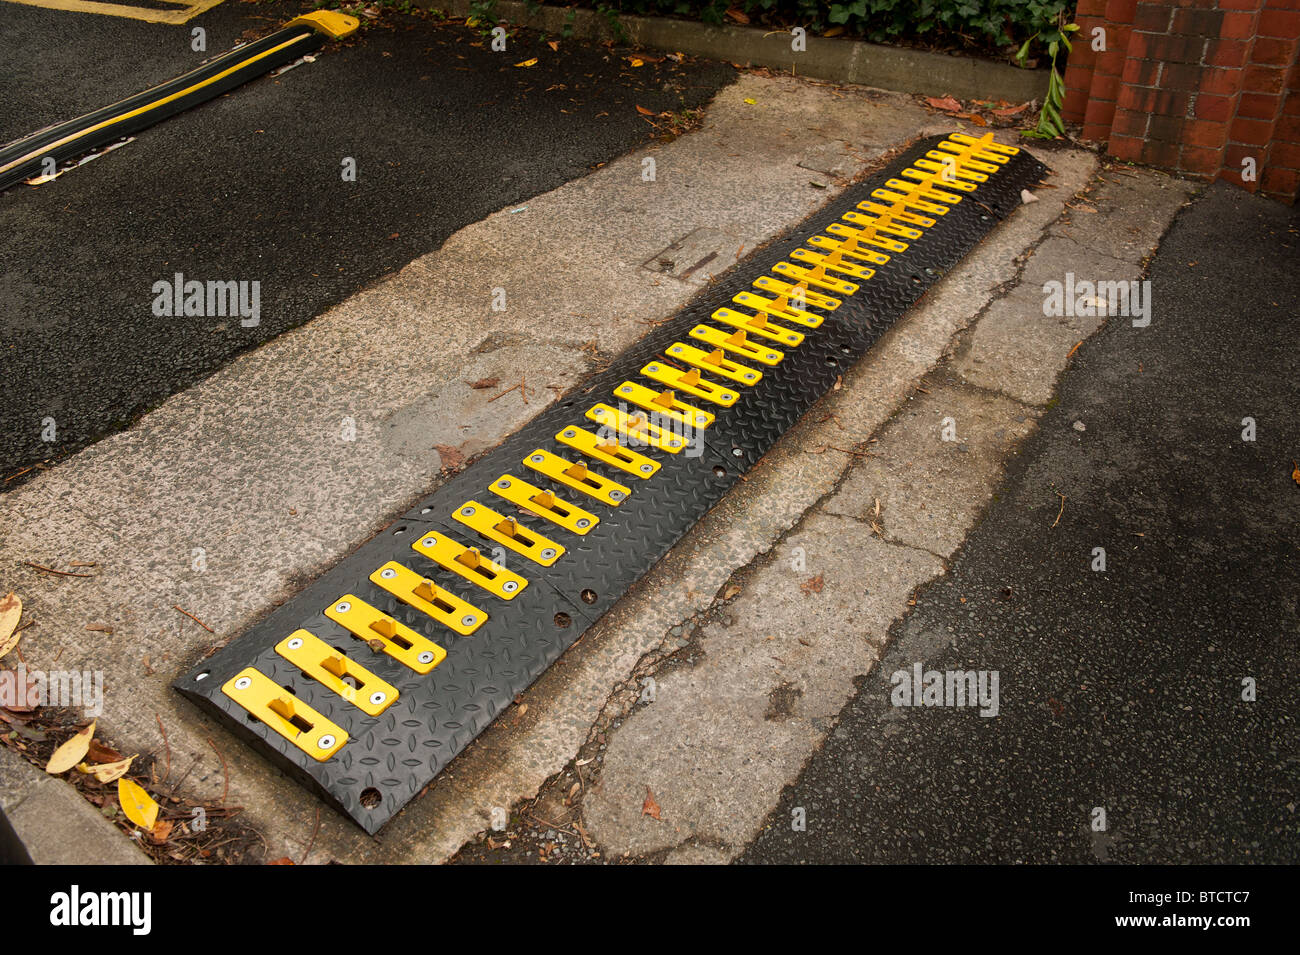 Traffic Control Barrier Stock Photos Amp Traffic Control